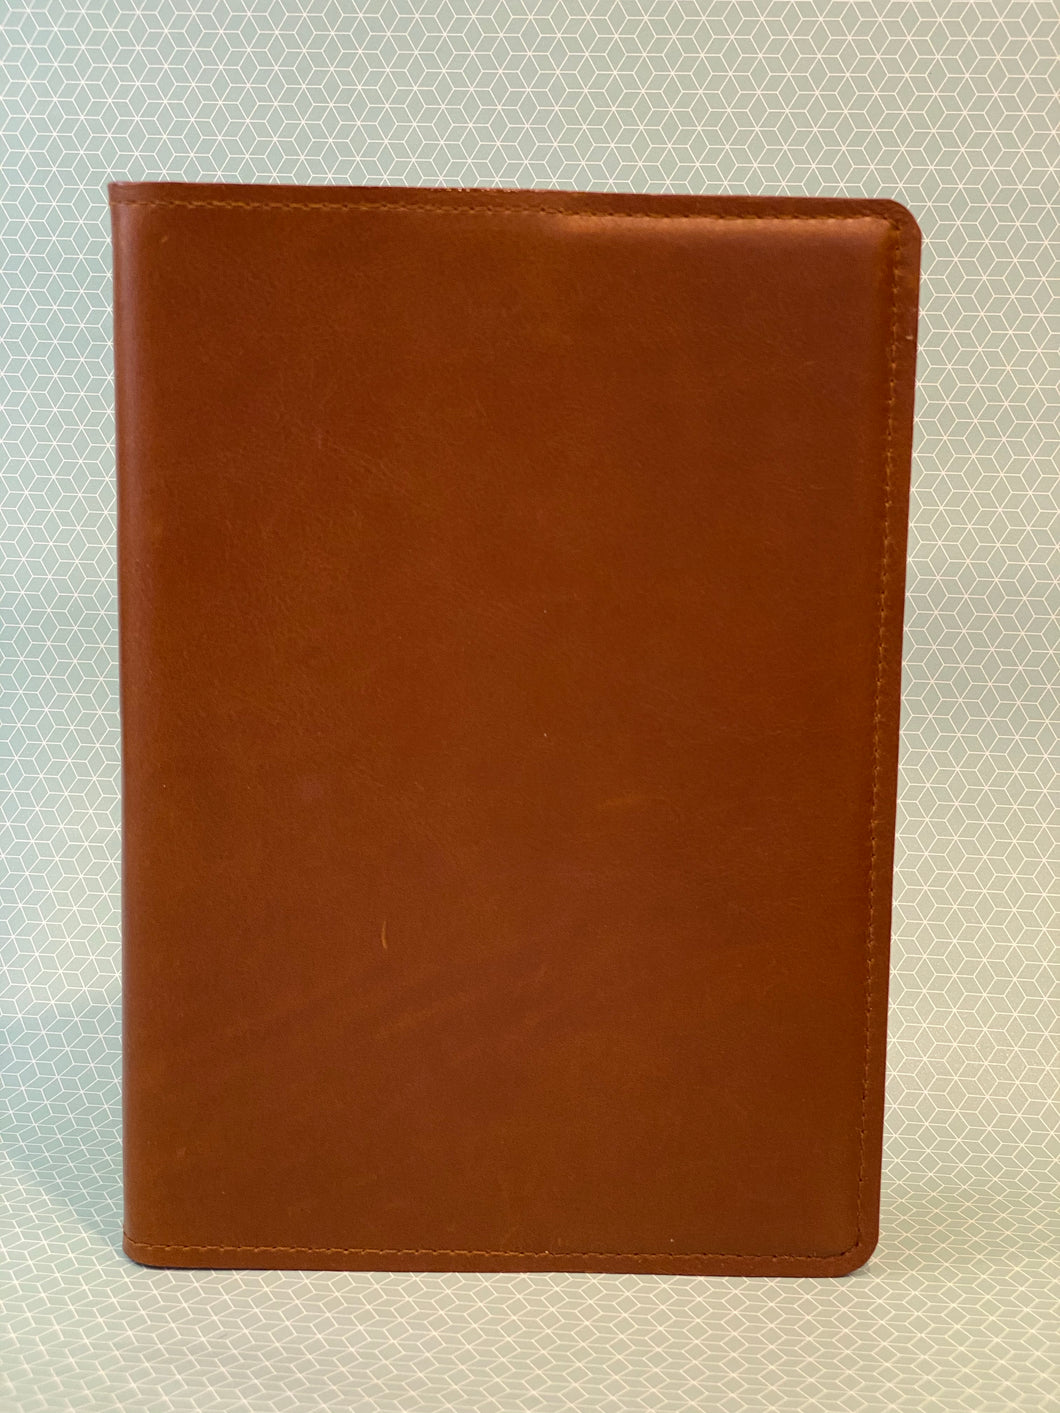 Jotta Journal - Italian Tan